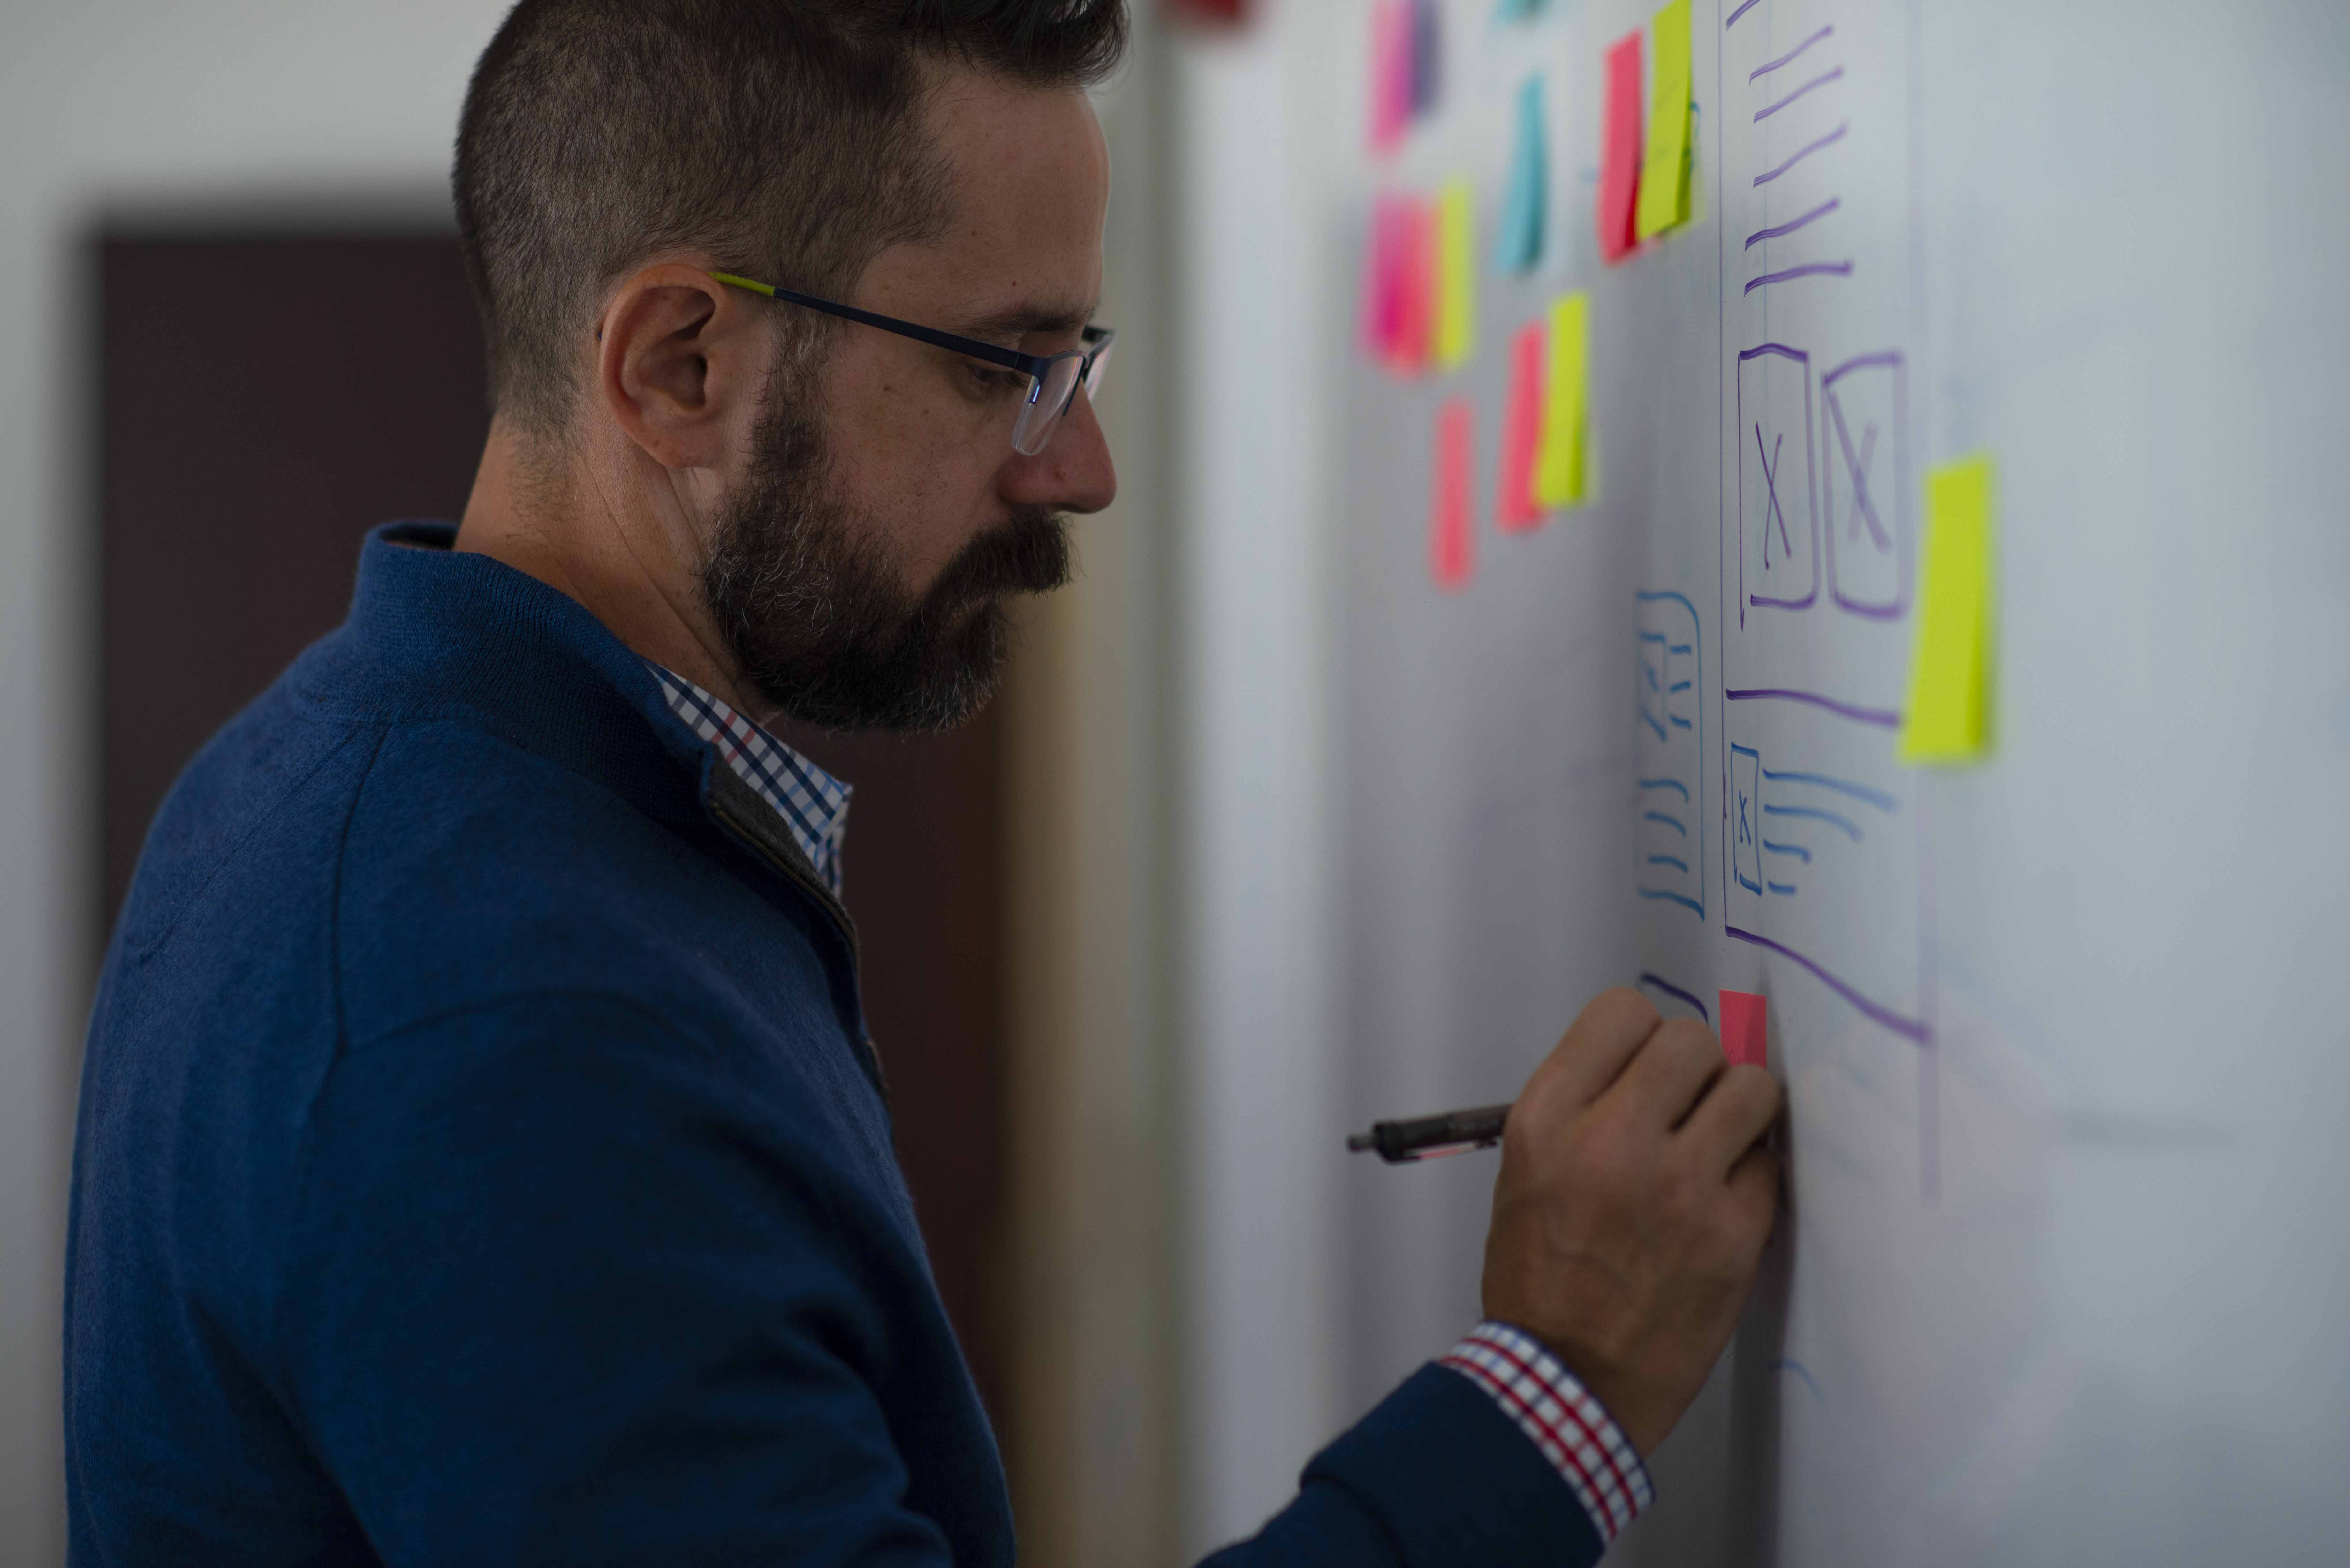 USDP designers Joe (a man with dark hair, beard, and glasses), strategizing on a whiteboard in a conference room.